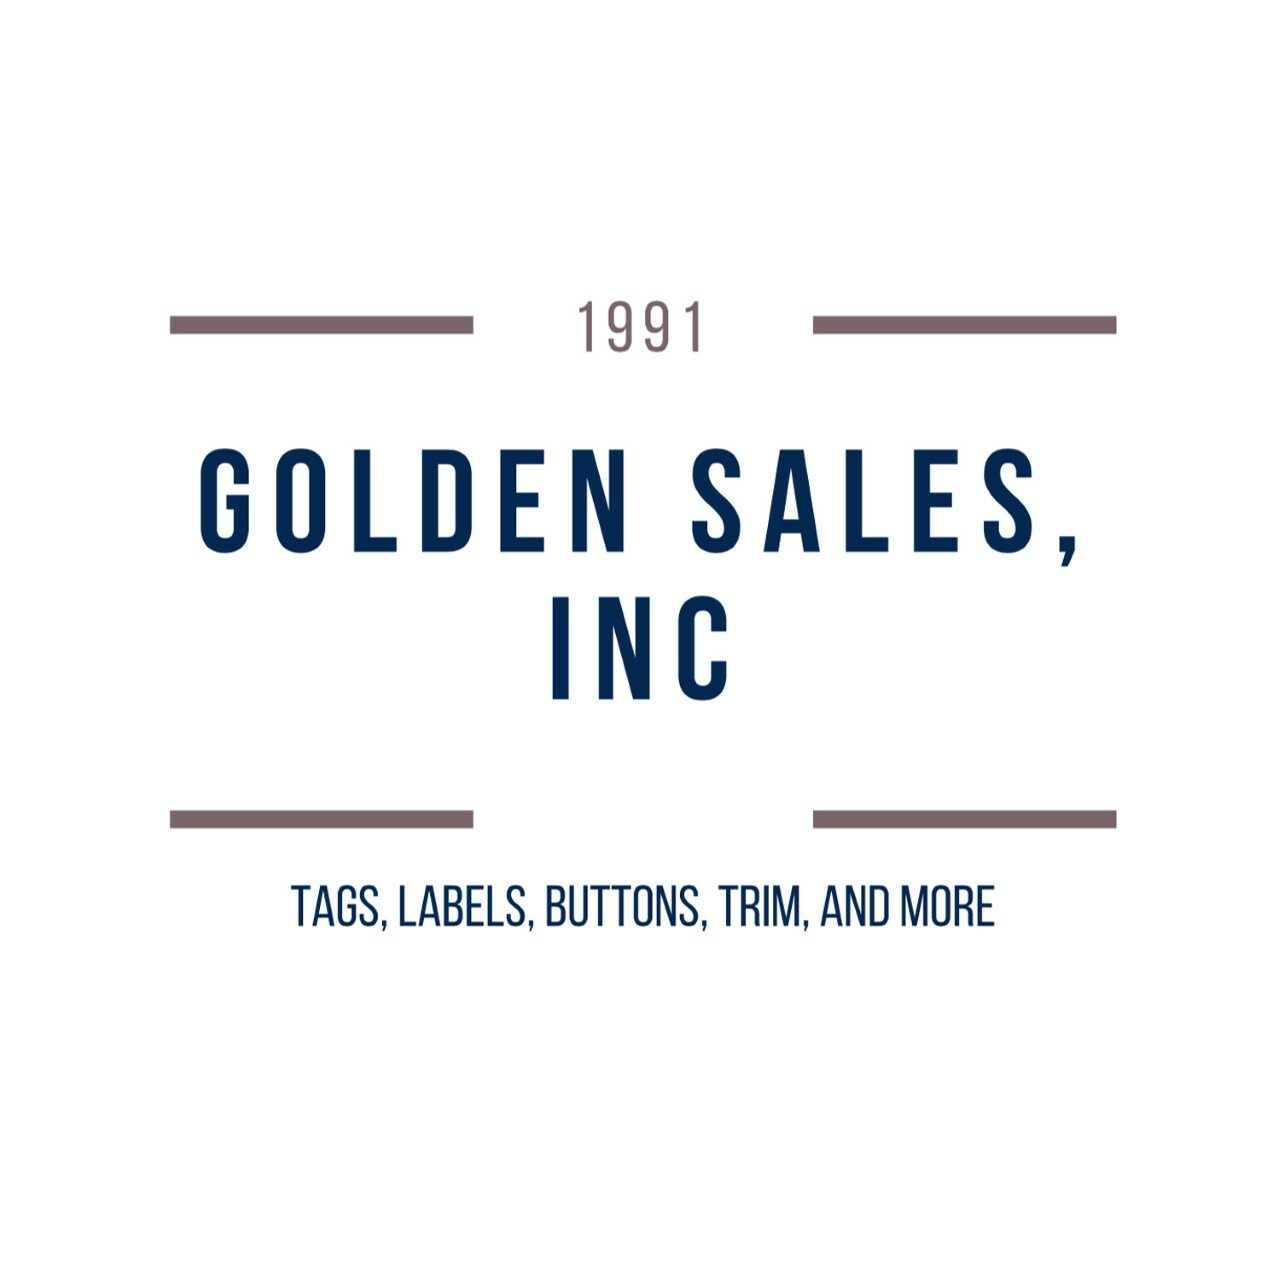 Golden Sales Inc: Printed & Woven Labels, Hangtags, Buttons, and Custom Apparel Goods!